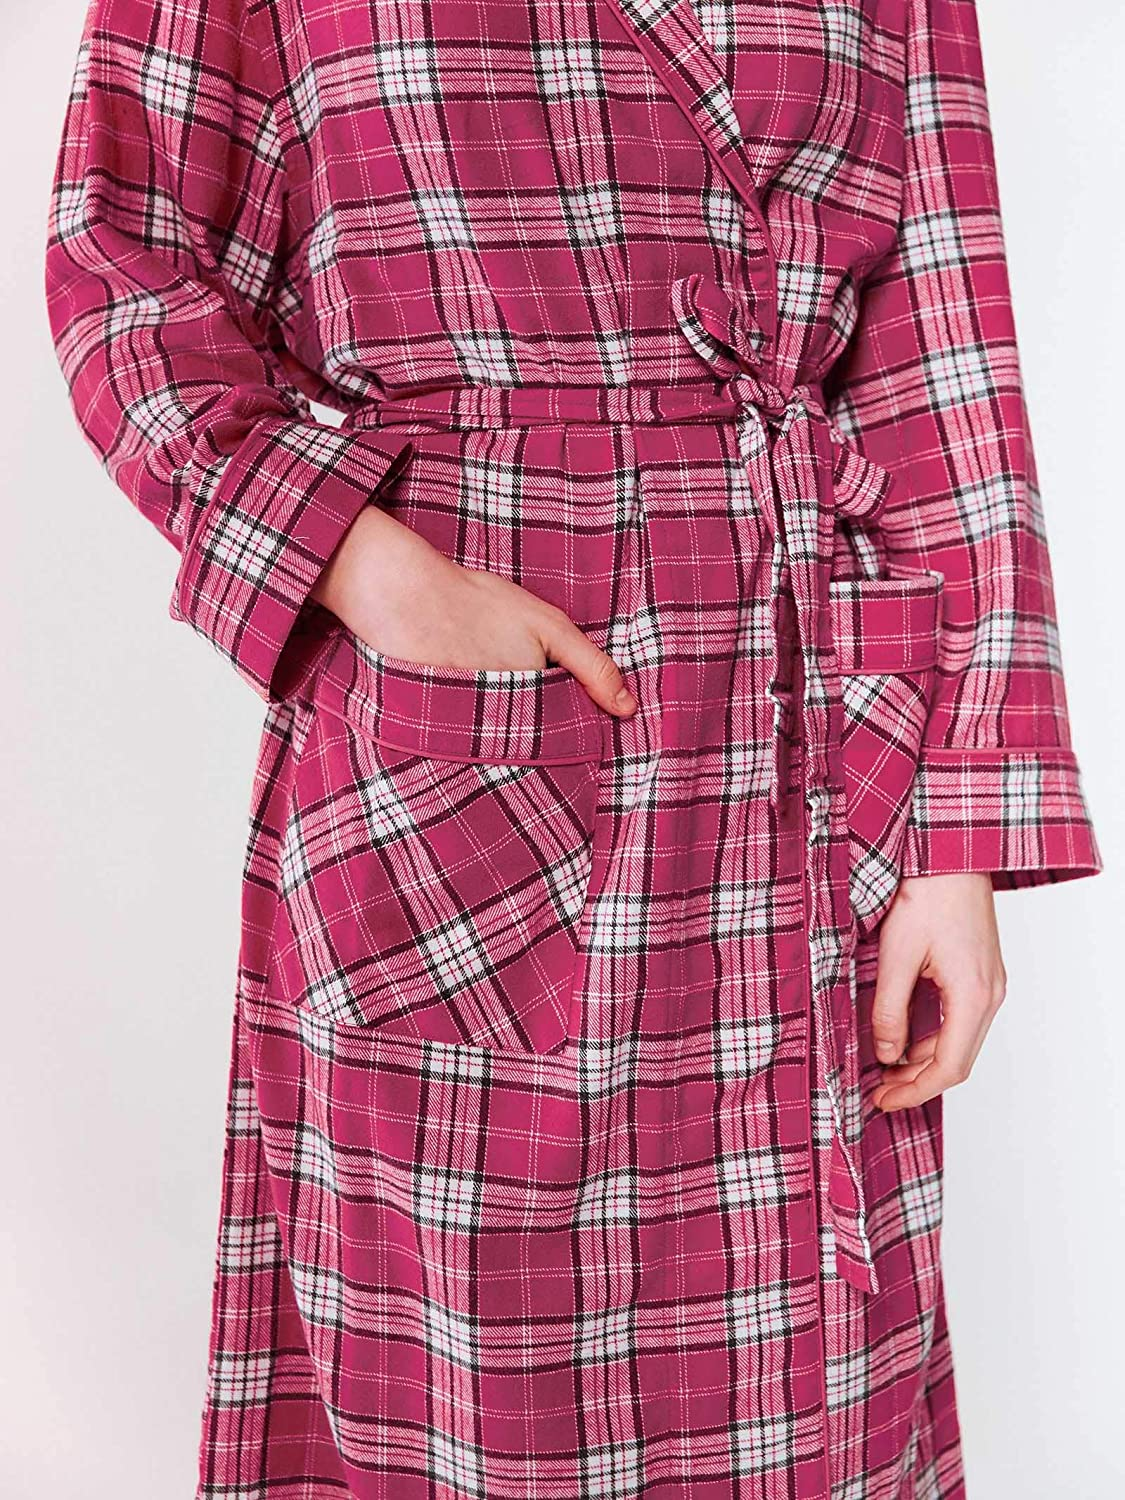 SIORO Womens Flannel Robes Soft Cotton Plaid Bathrobe Shawl Collar Loungewear with Pockets